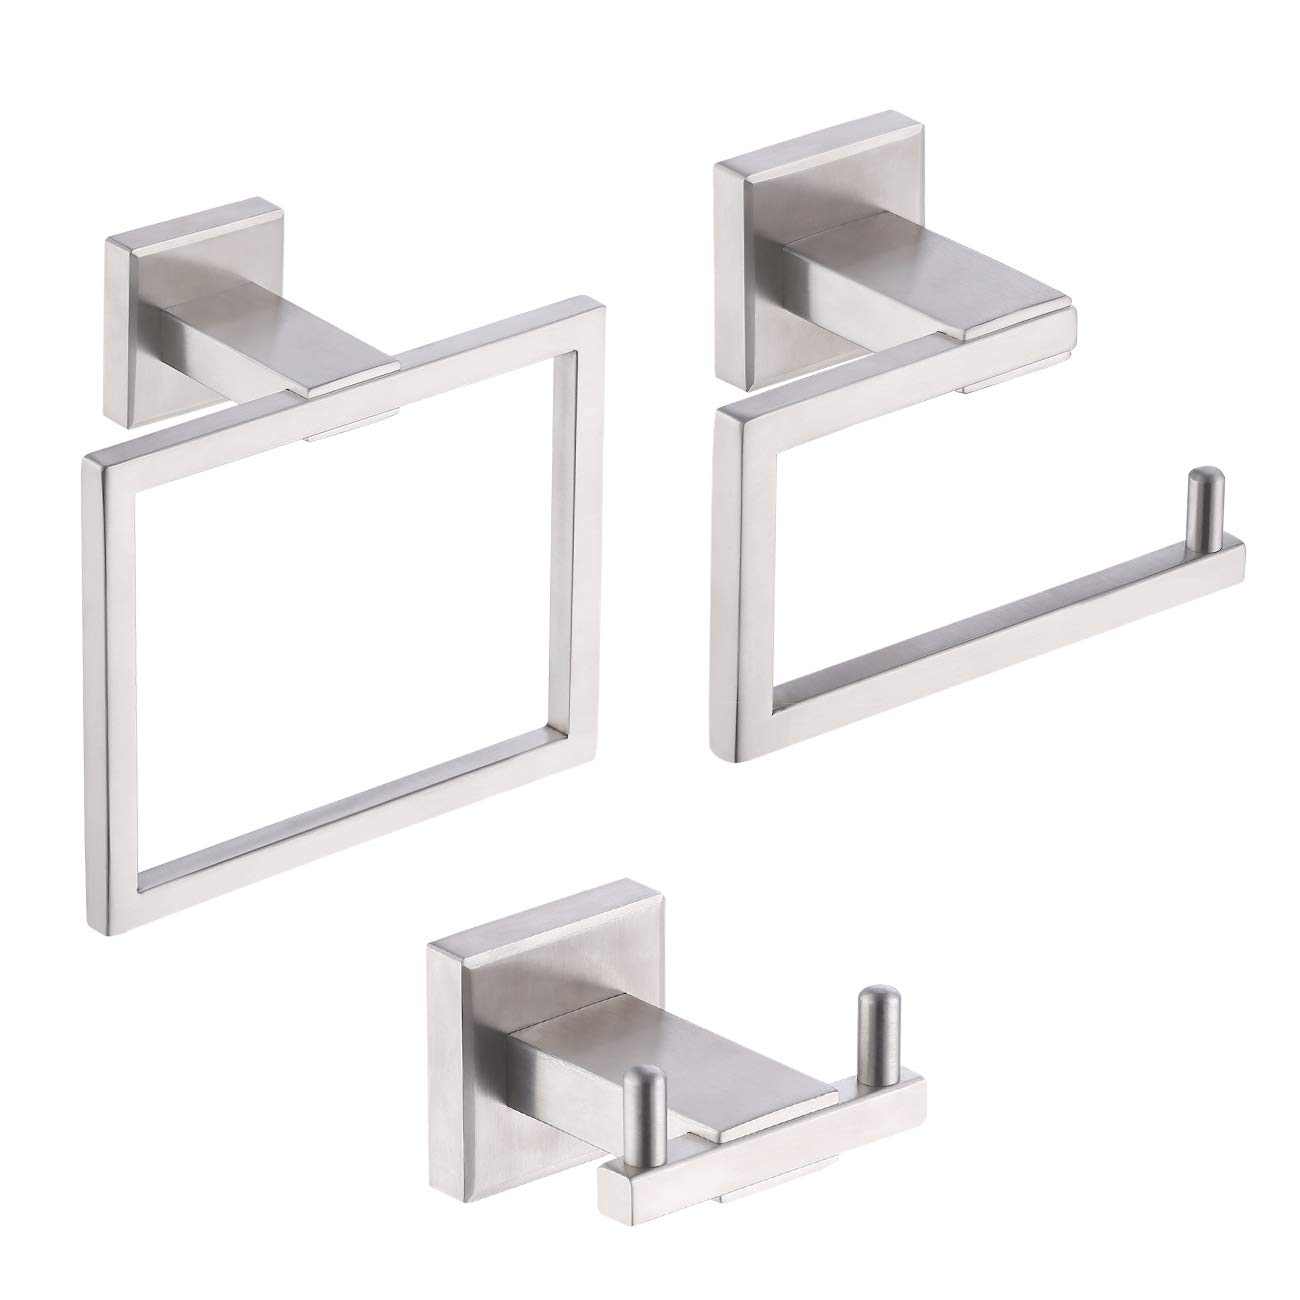 Kes Bathroom Accessories Toilet Paper Holder Double Robe Towel Hook Towel Ring Contemporary SUS304 Stainless Steel Rustproof 3-Piece Wall Mount, Brushed Finish, LA242-31